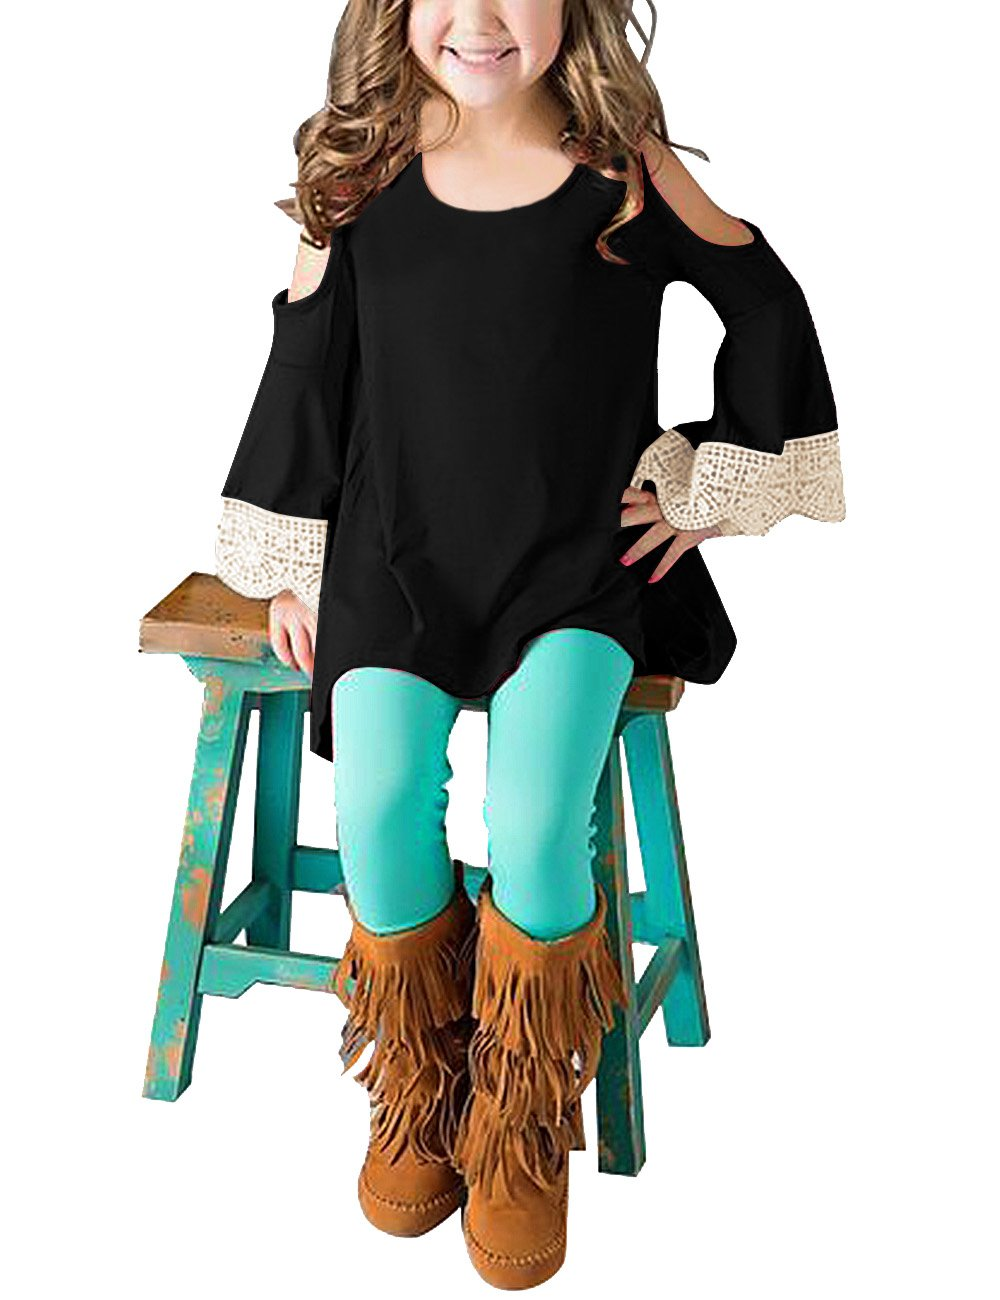 GRAPENT Girls Cold Shoulder Crochet Long Sleeve Casual Loose Tunic Shirt Irregular Top Blouses Black Size Medium (6-7 Years)